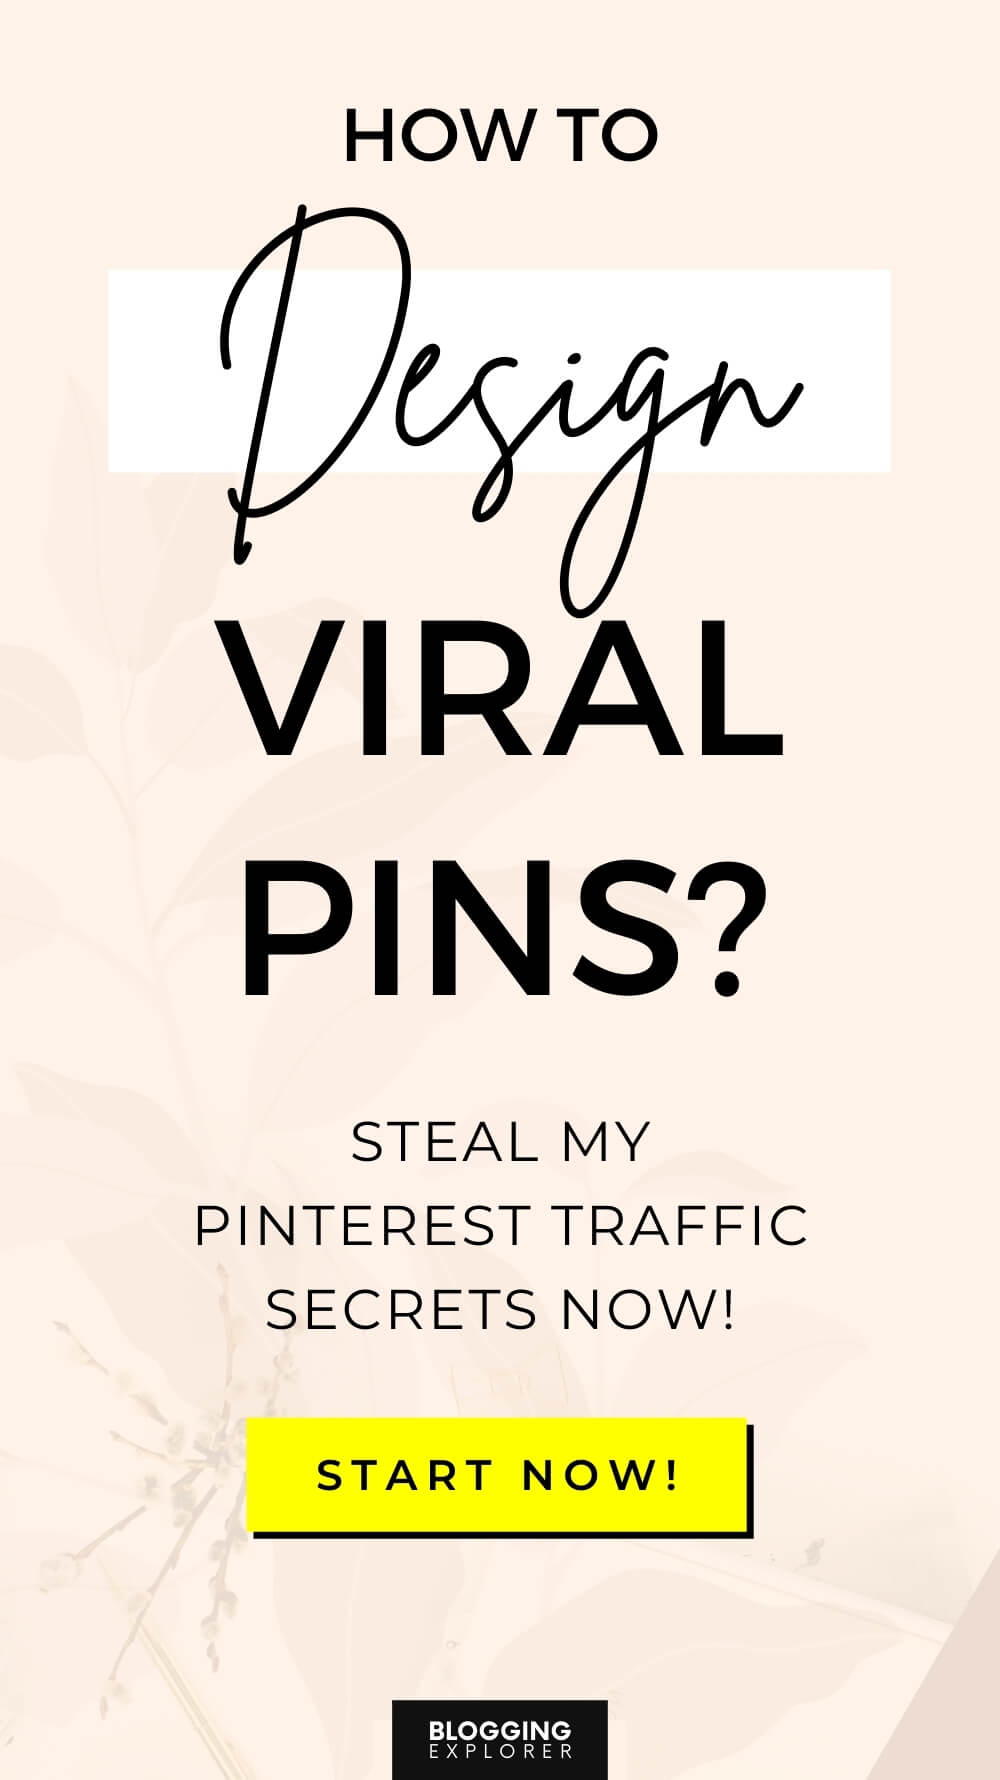 How to design viral pins for Pinterest - Blog traffic guide for beginners